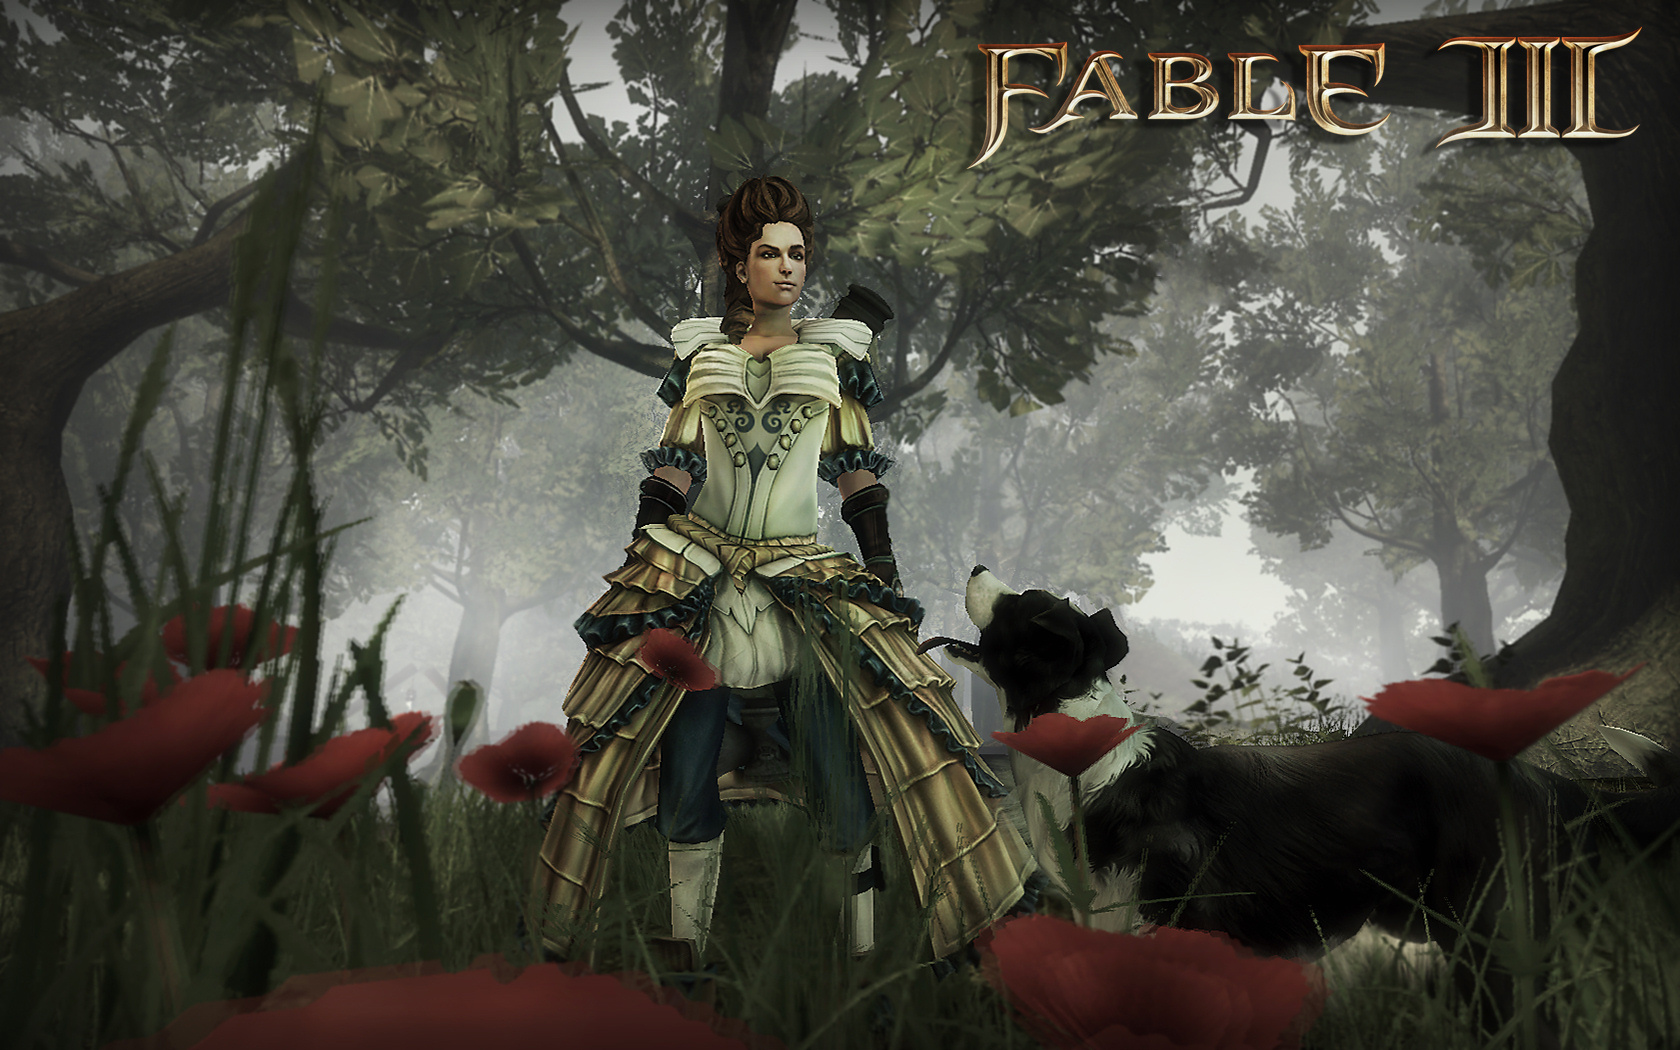 Black Ops 2 Wallpaper Fable Iii Pc Available May 17th With Nvidia 3d Vision